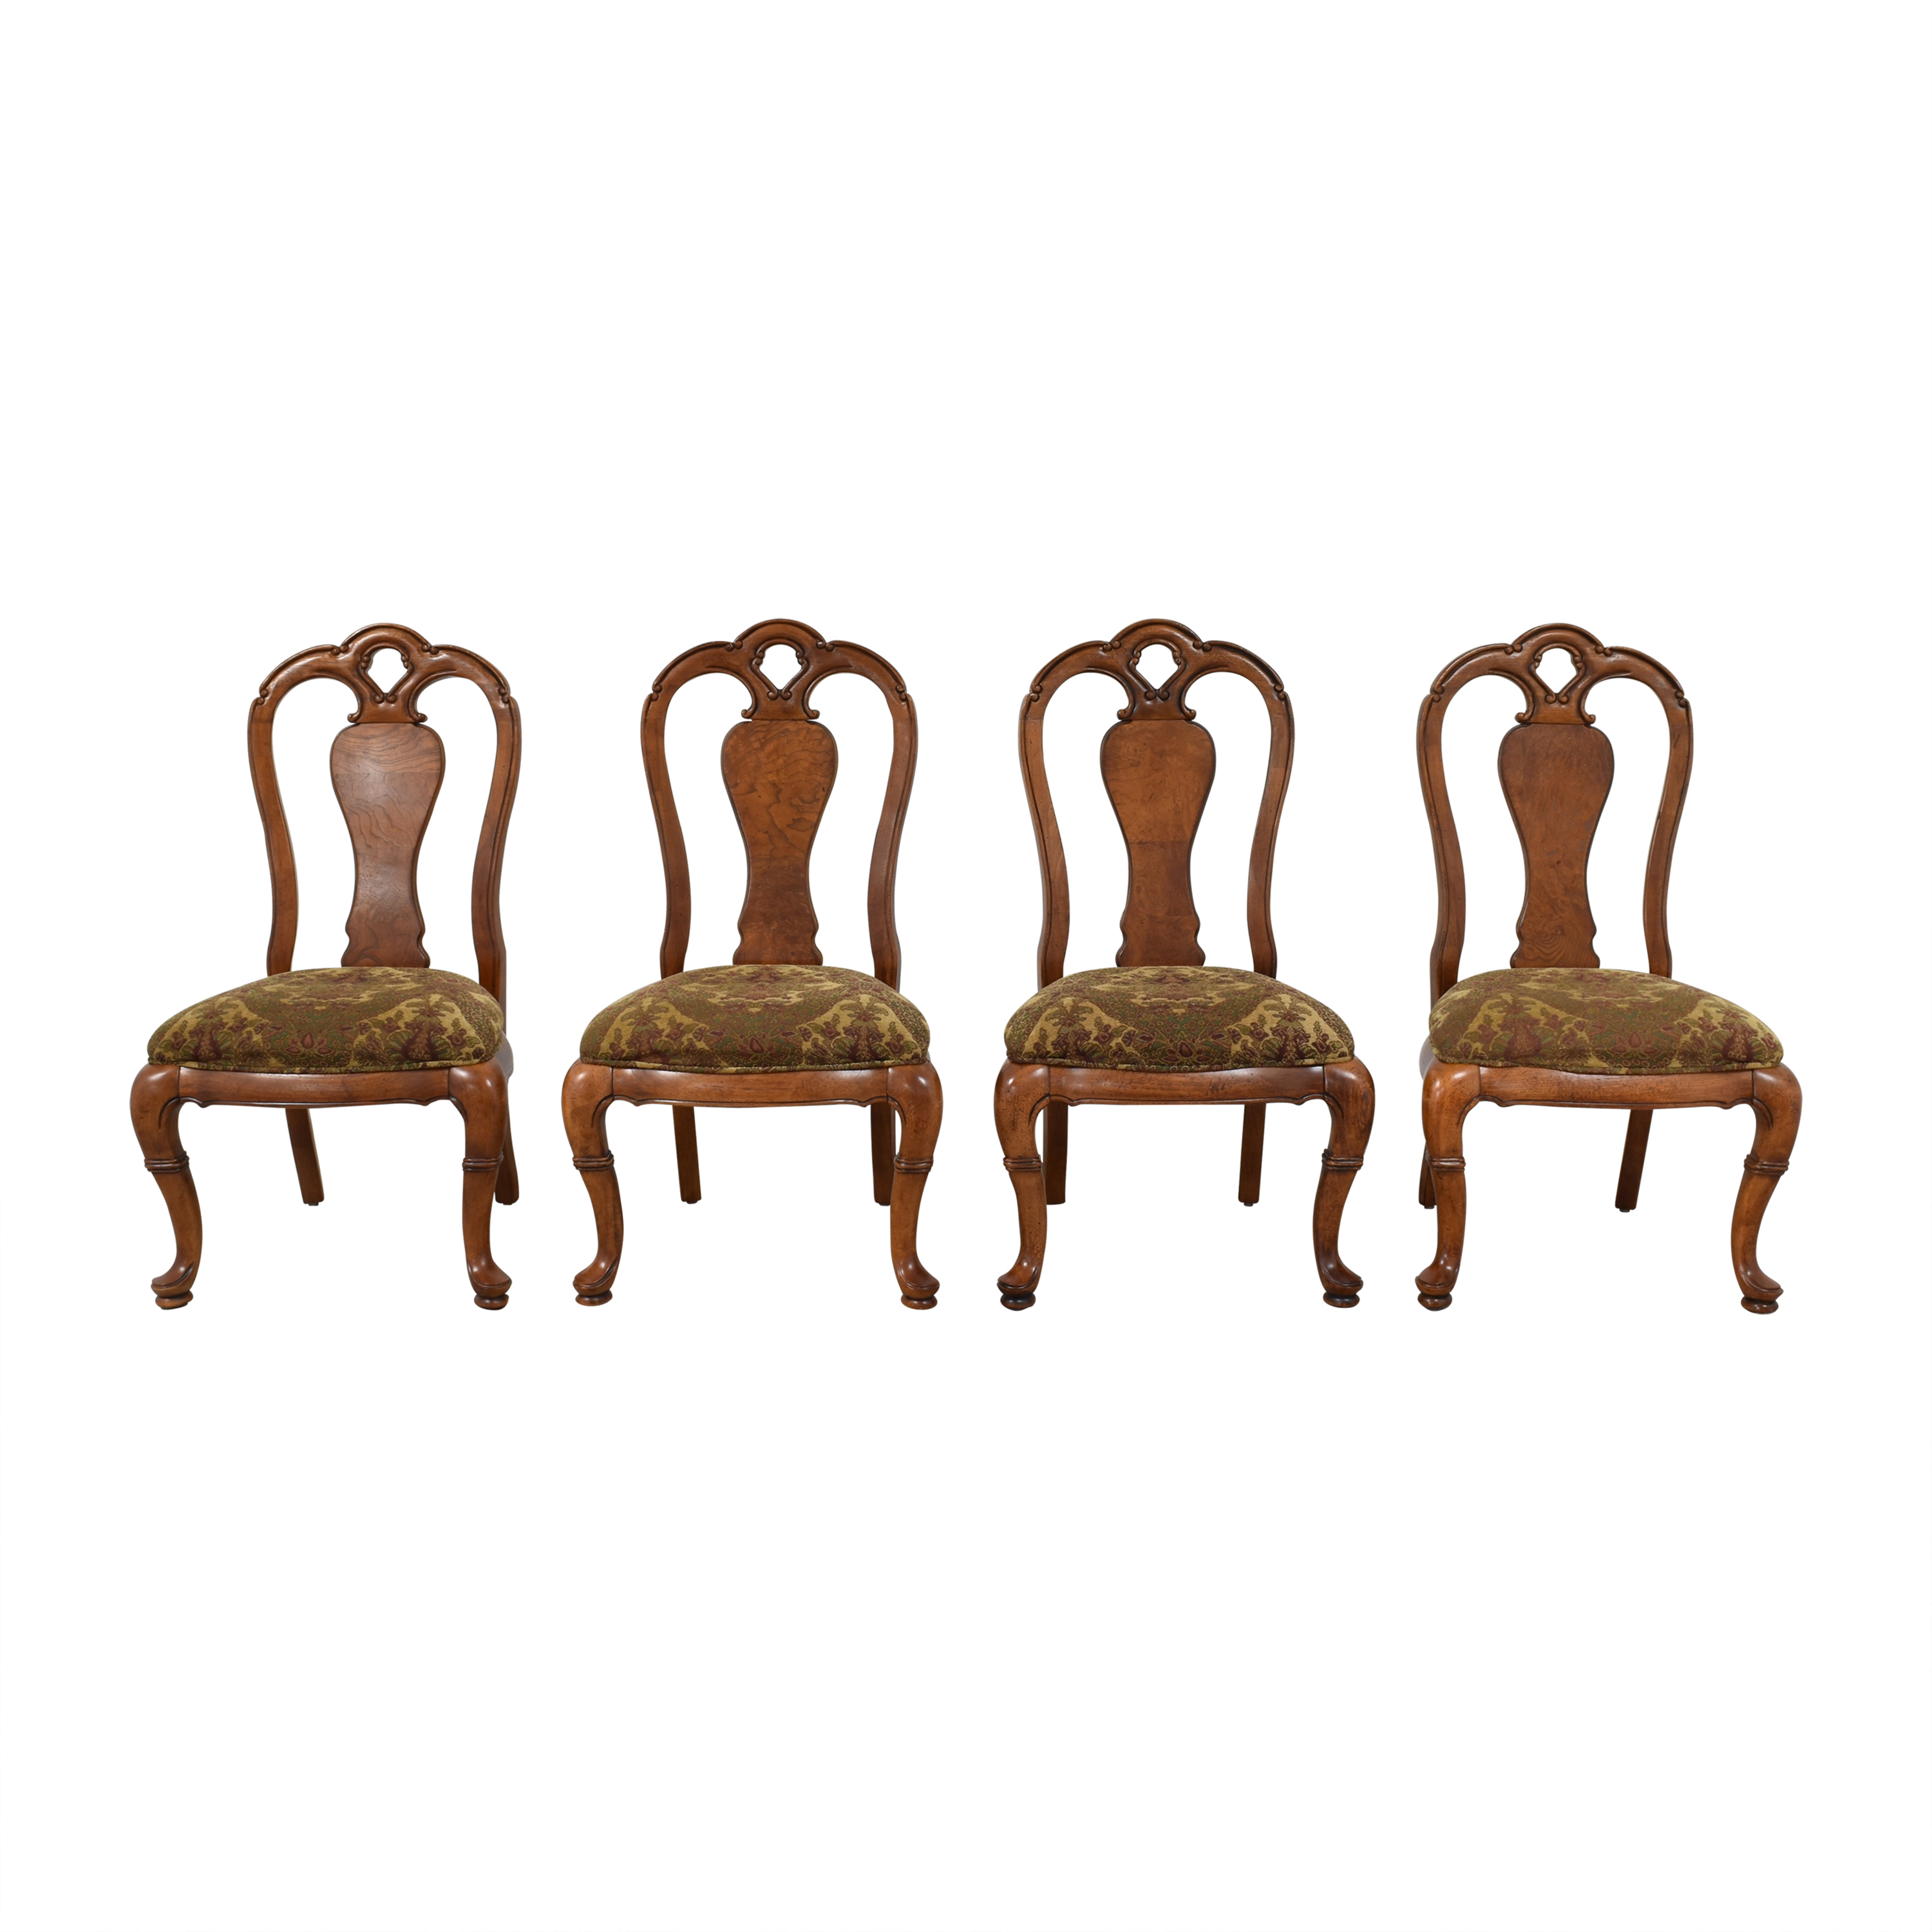 Thomasville Queen Anne Dining Side Chairs / Chairs